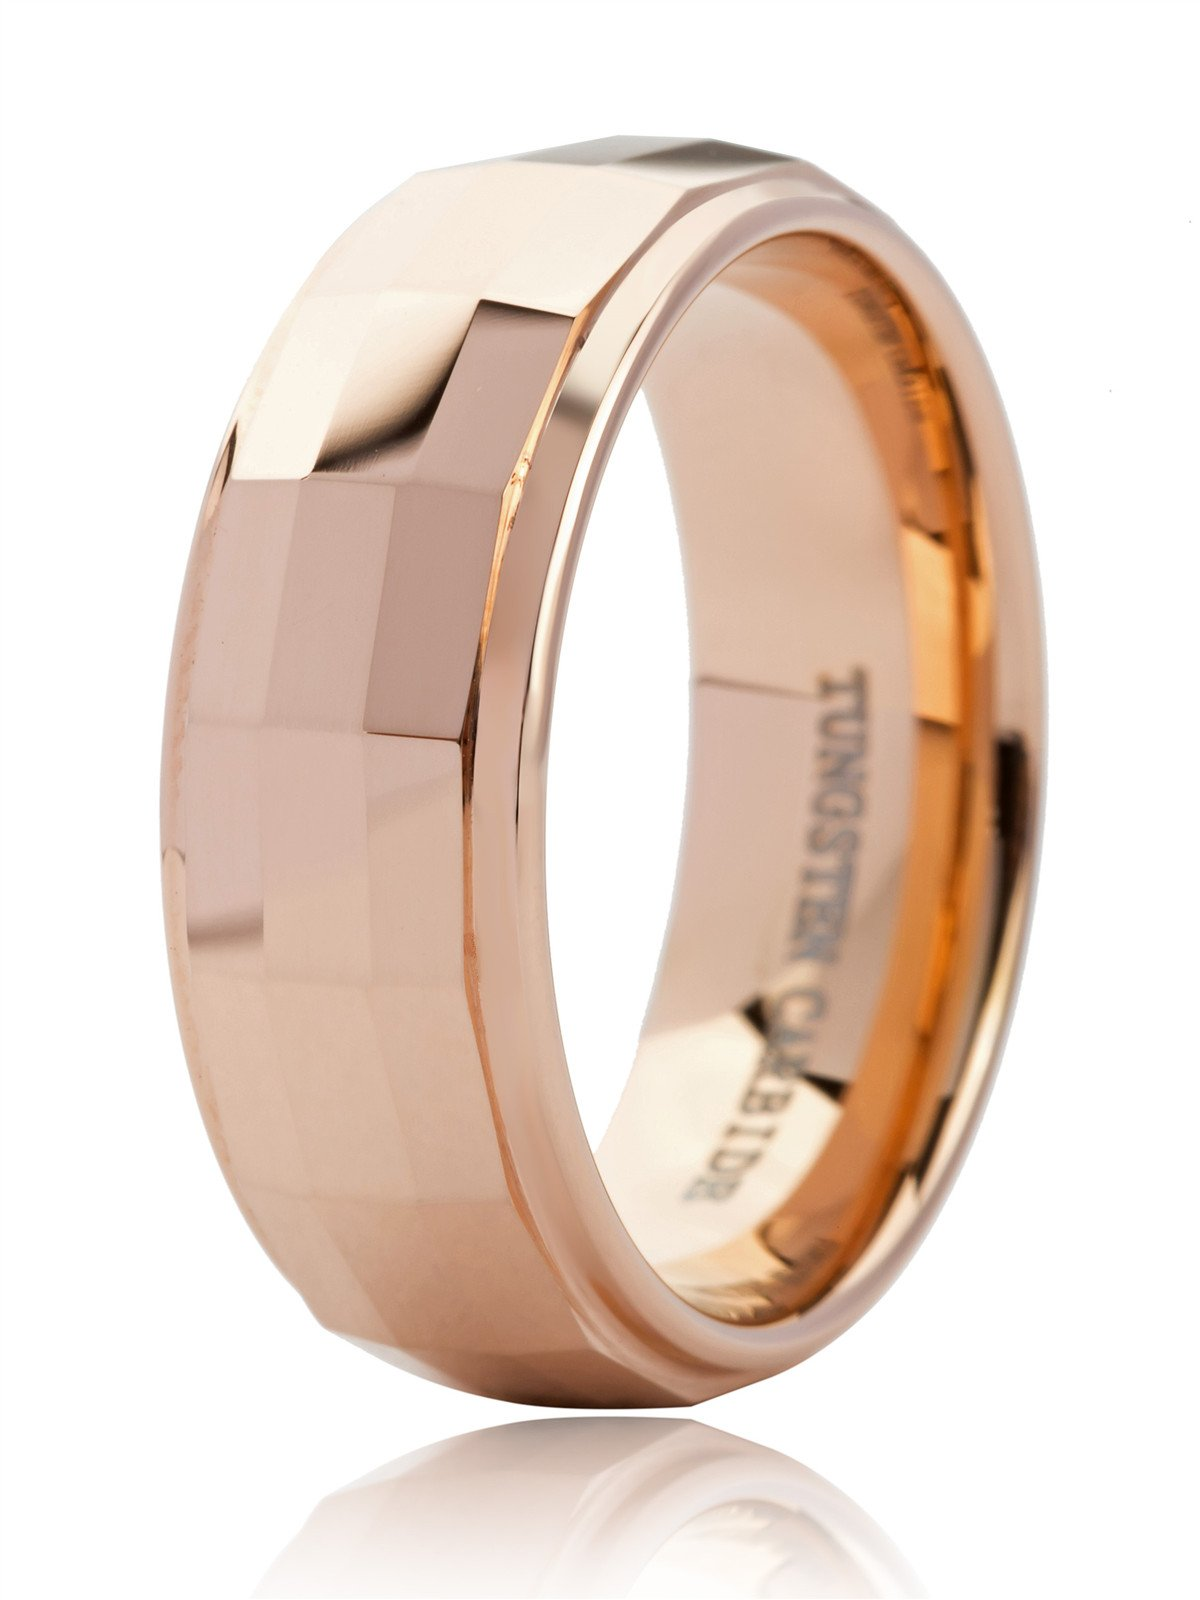 Just Lsy Gentleman 8mm Tungsten Carbide Wedding Band Ring For Men Multi Faceted Cut 18K Rose Gold Comfort Fit Size 11.5